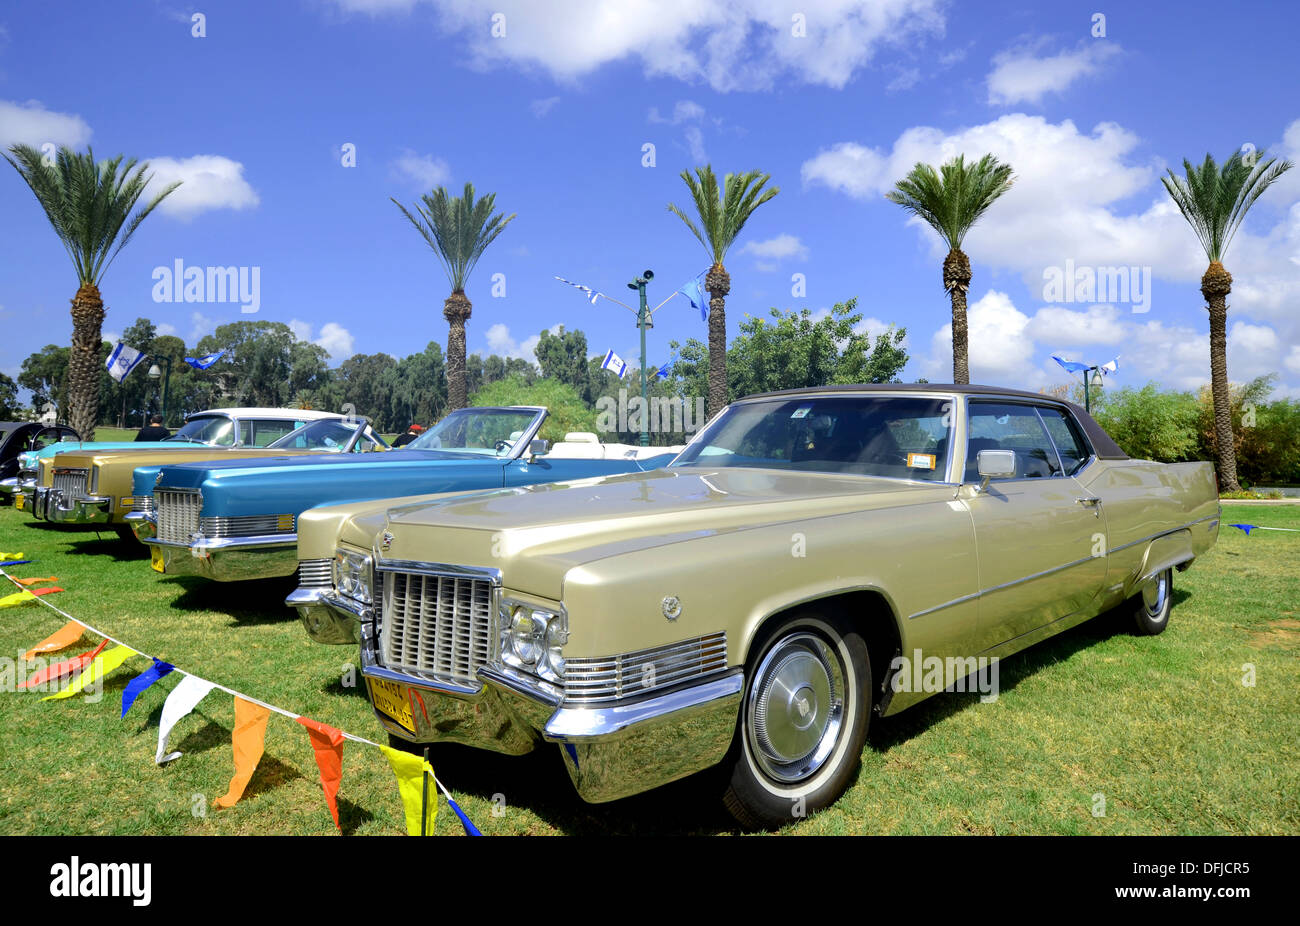 Classic Cars on display - Stock Image